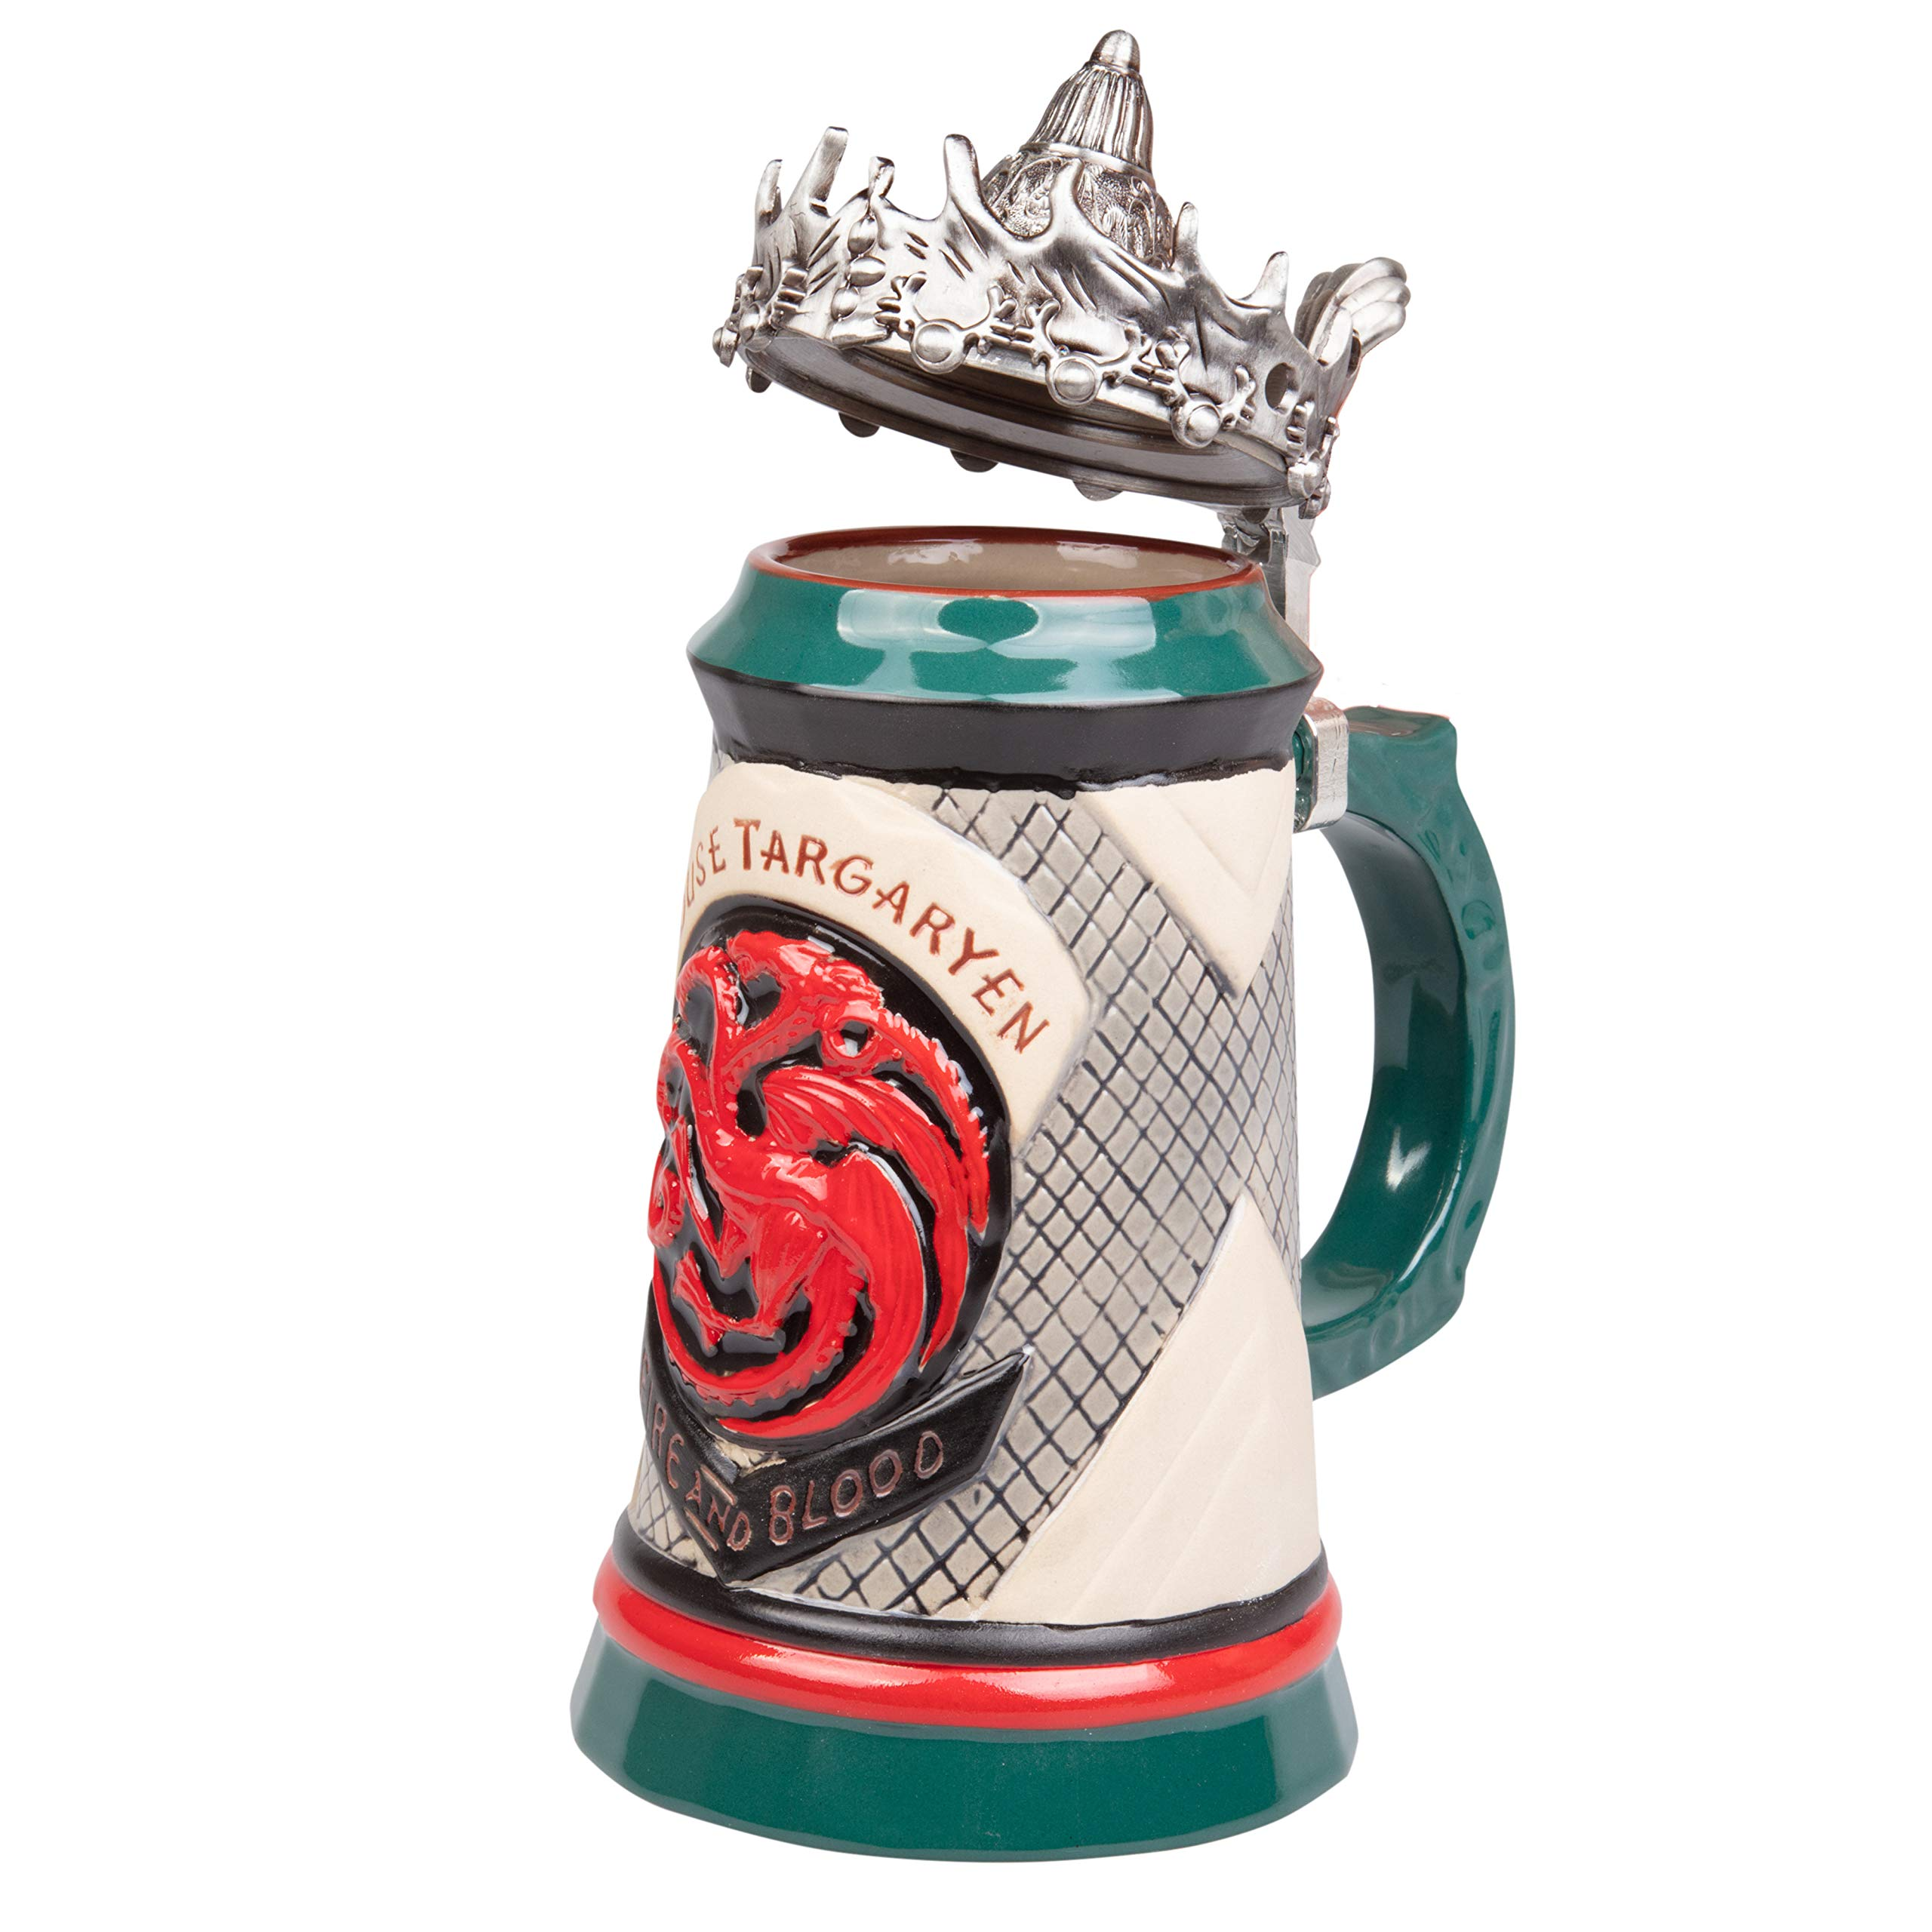 Game of Thrones House Targaryen Stein - 22 Oz Ceramic Base with Pewter Baratheon Crown Top by Game of Thrones (Image #2)